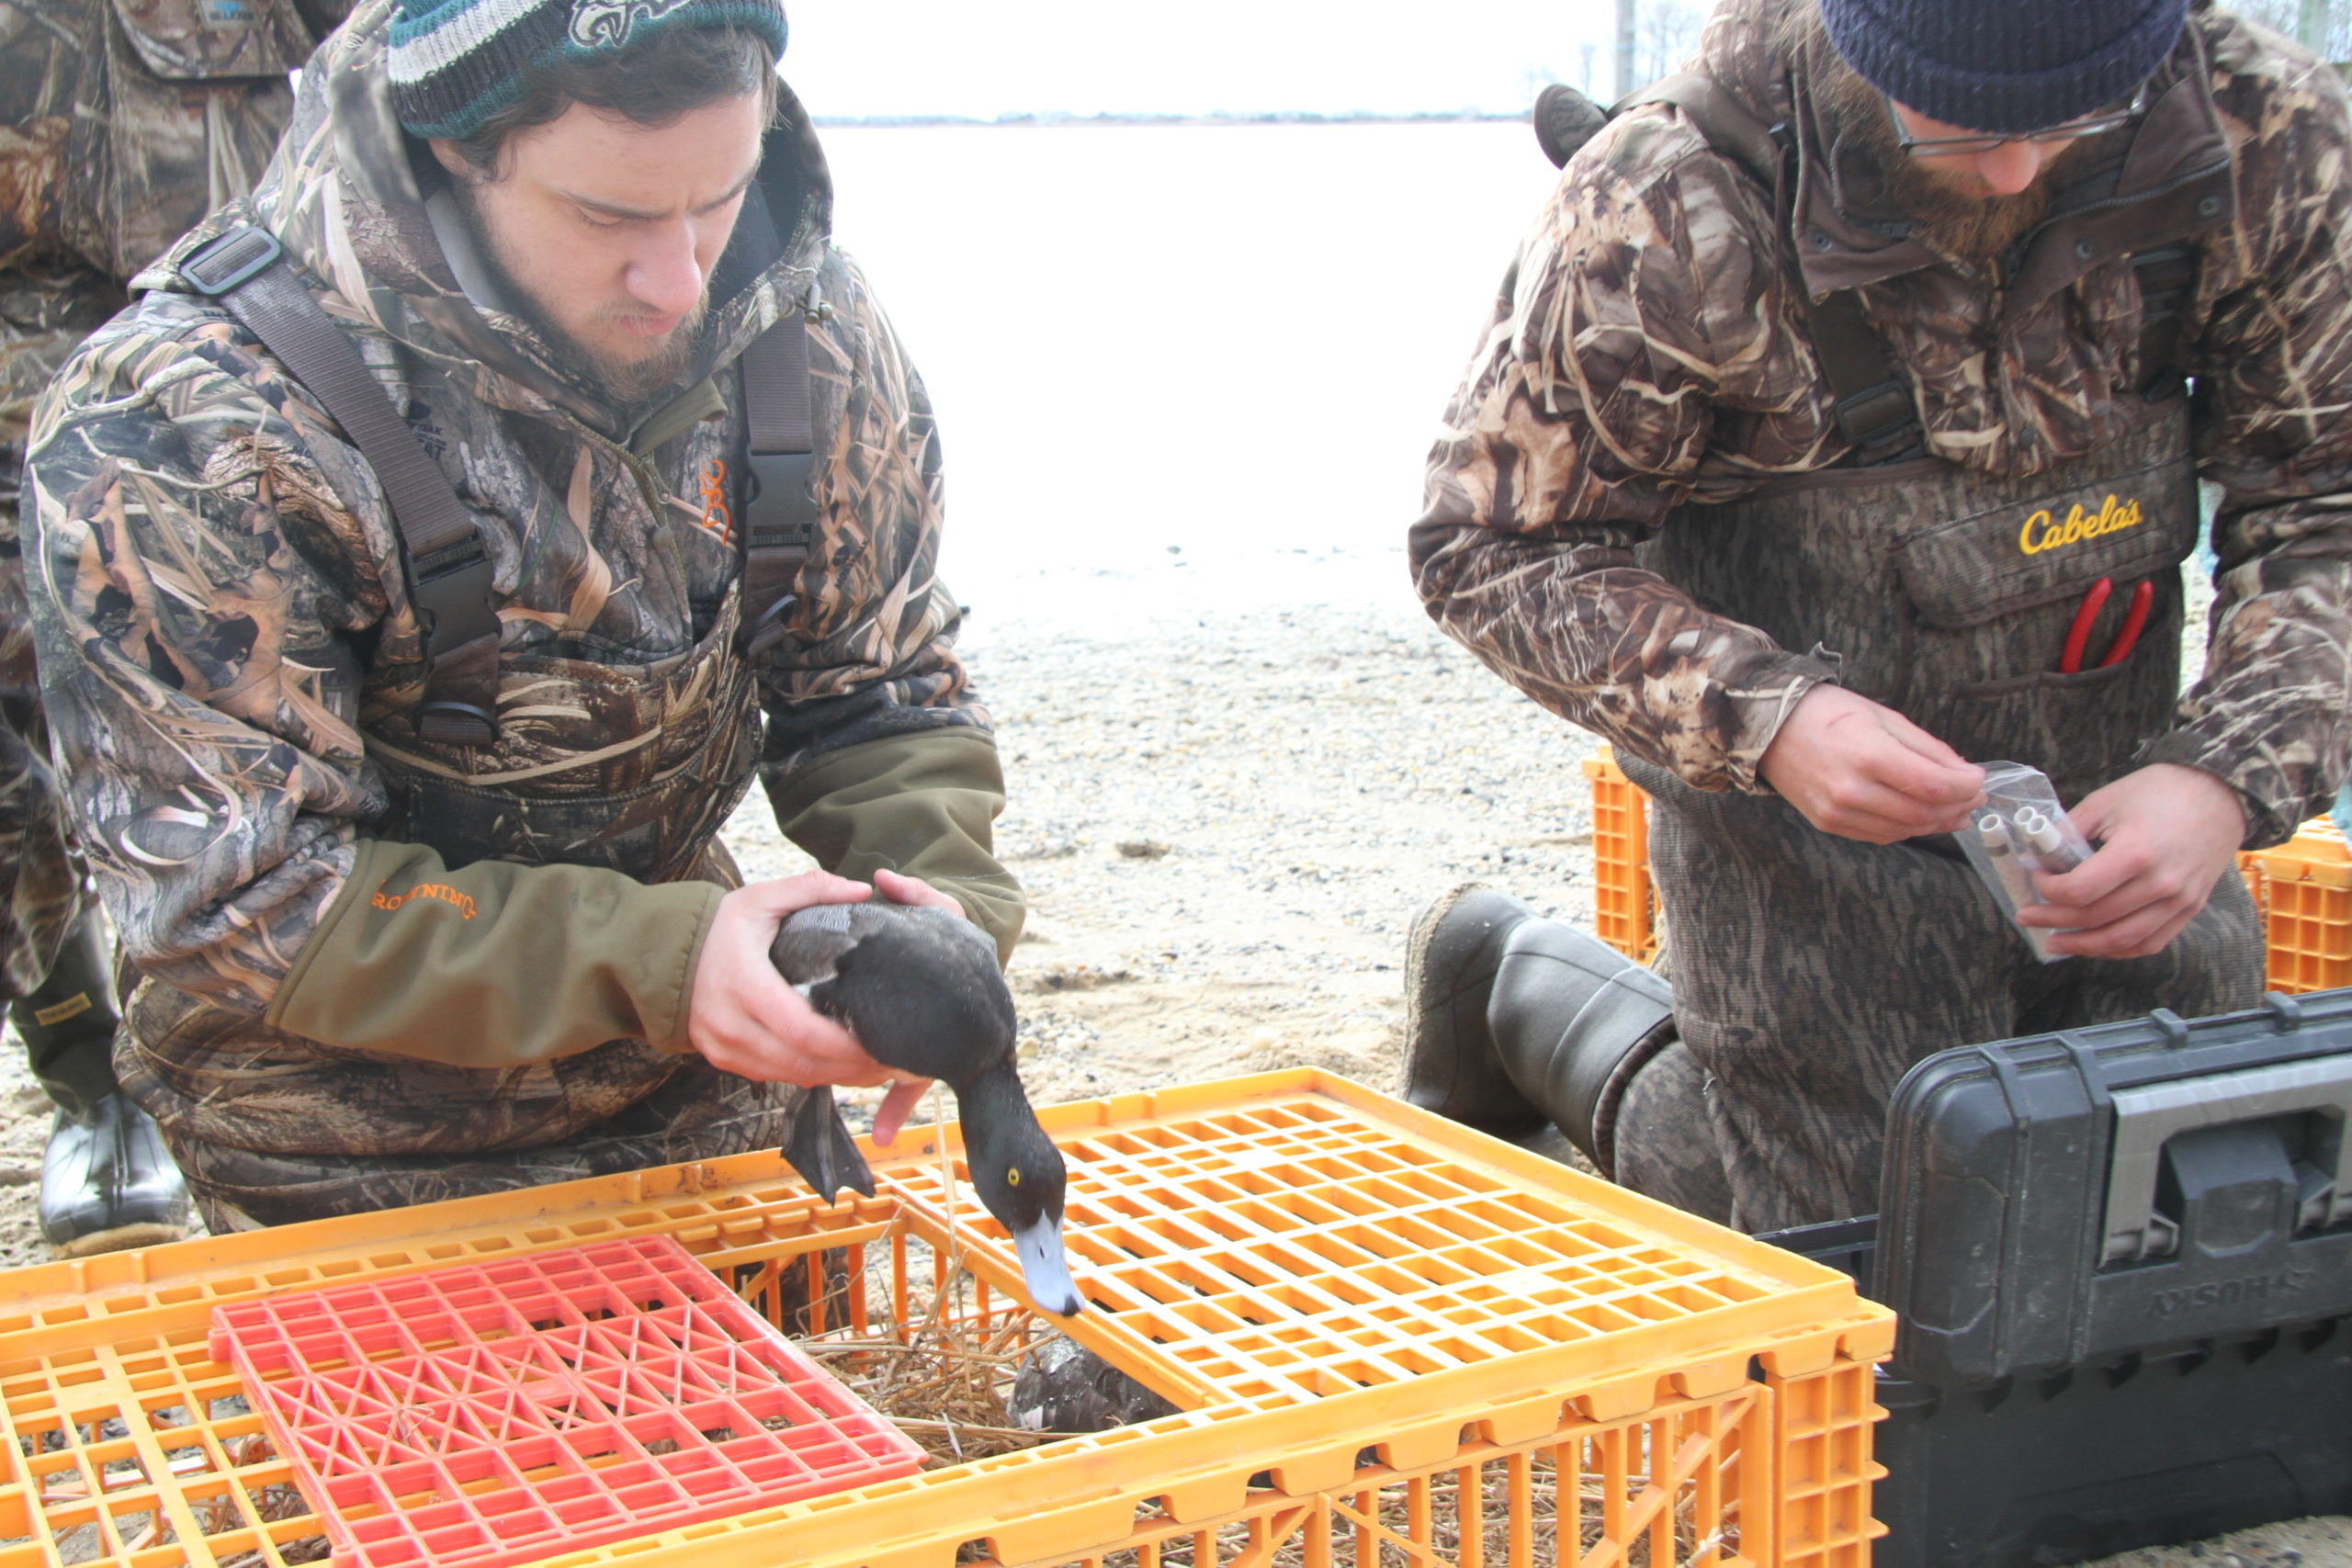 The Long Island Wildfowl Heritage Group and SUNY College of Environmental Science and Forestry are teaming up to band scaup ducks in local bays.